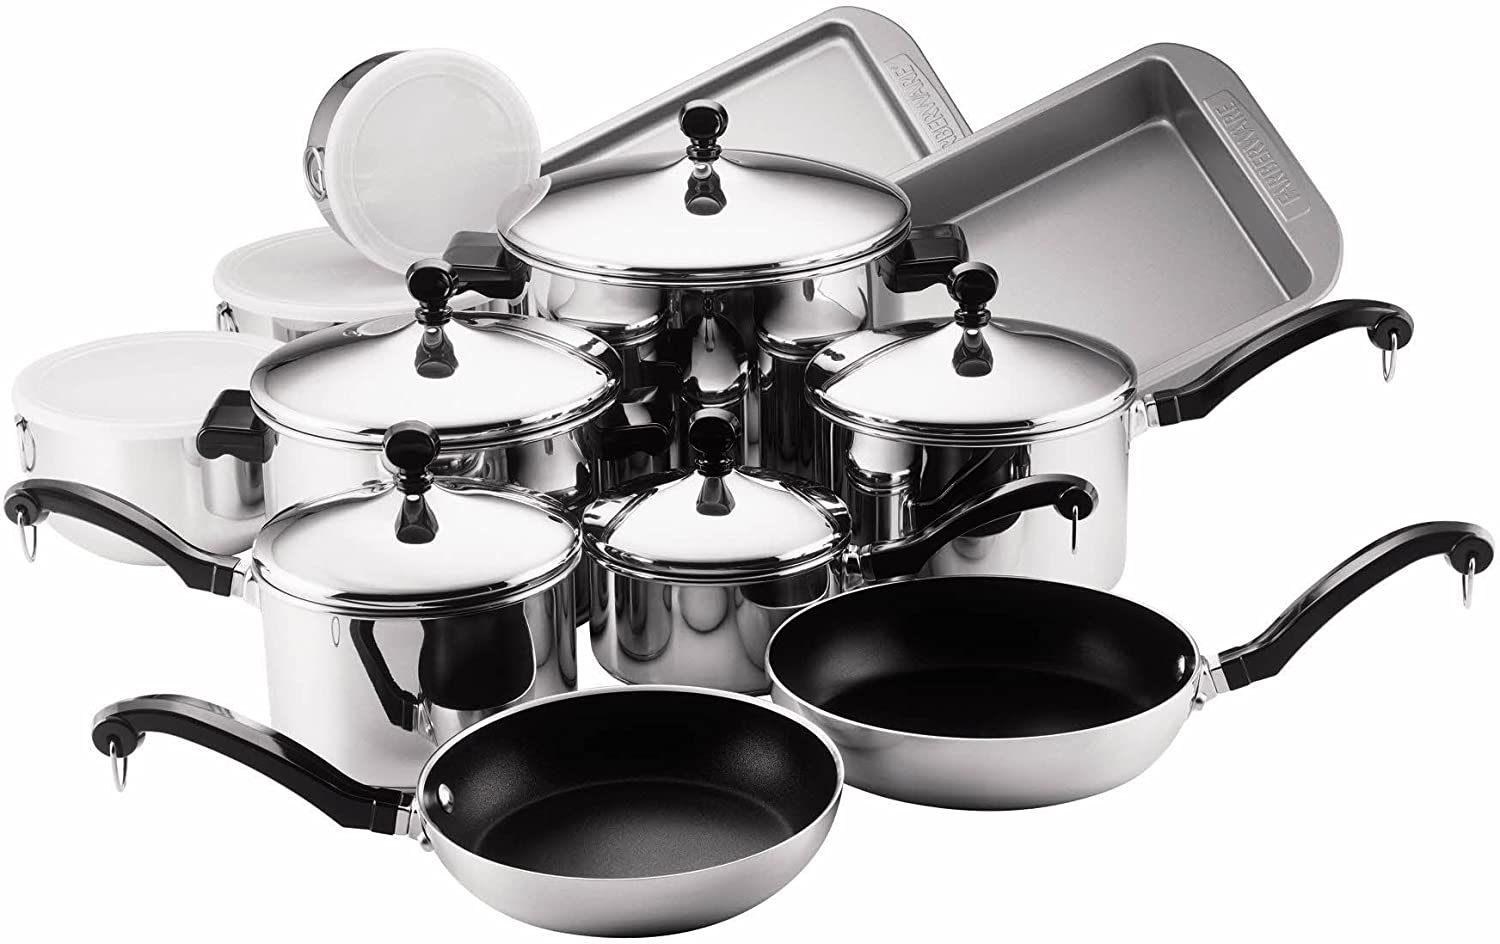 Best affordable stainless steel cookware. Farberware Classic Stainless Steel Cookware Set — 17